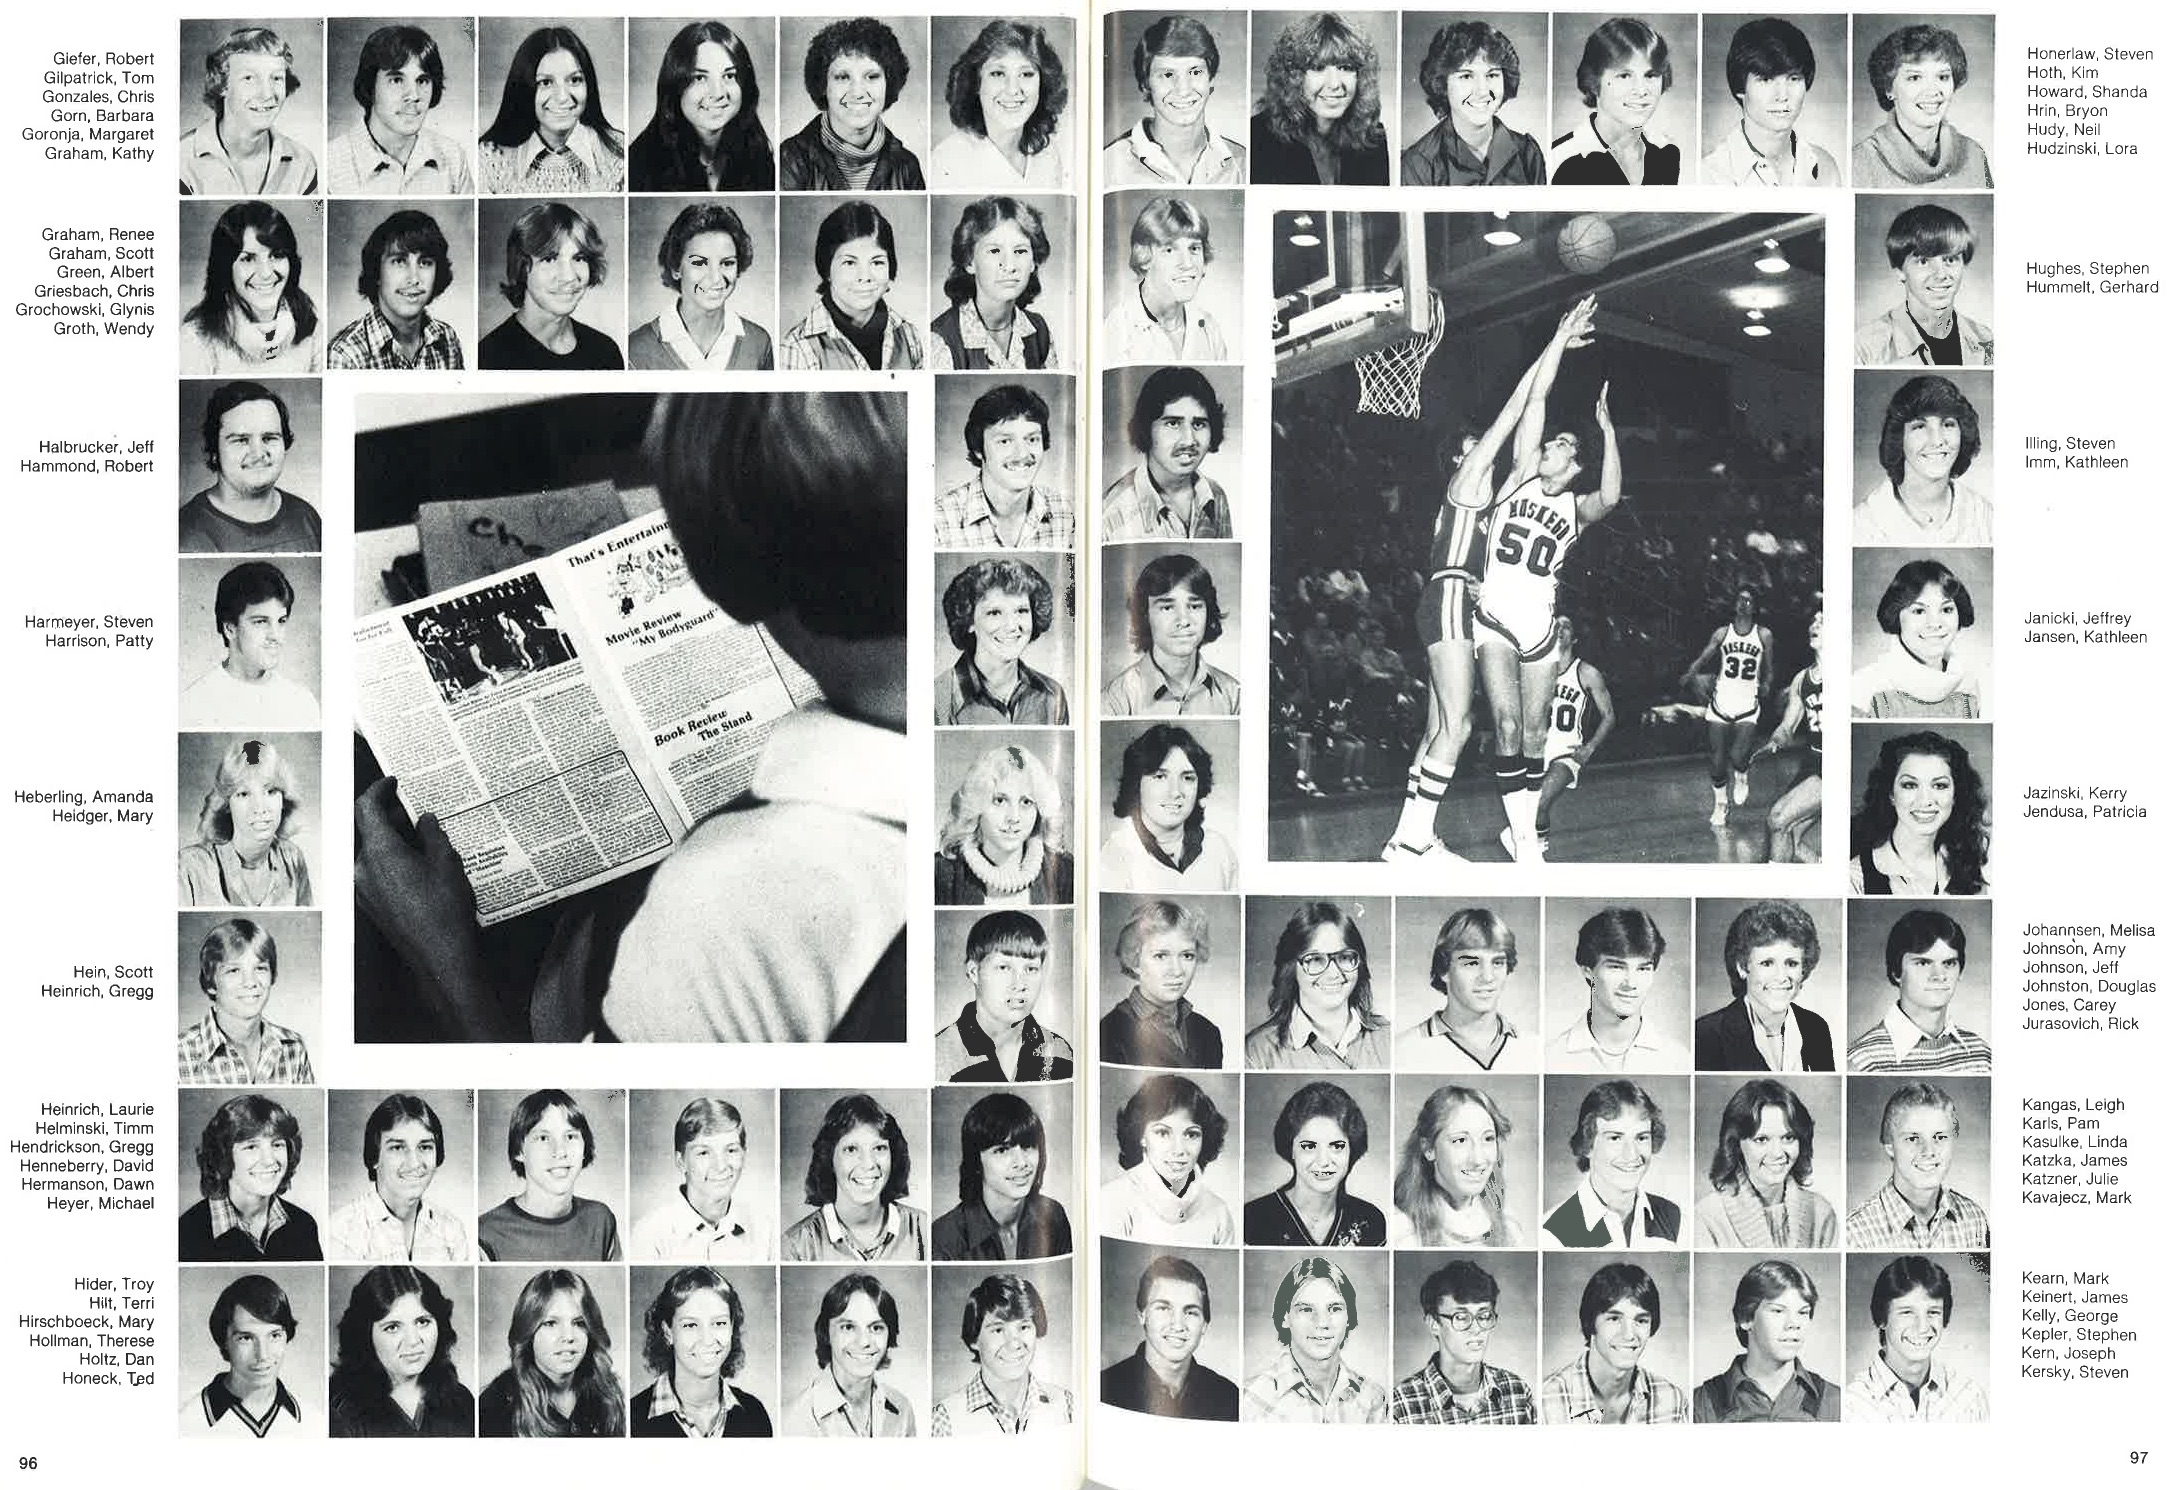 1981_Yearbook_96.jpg